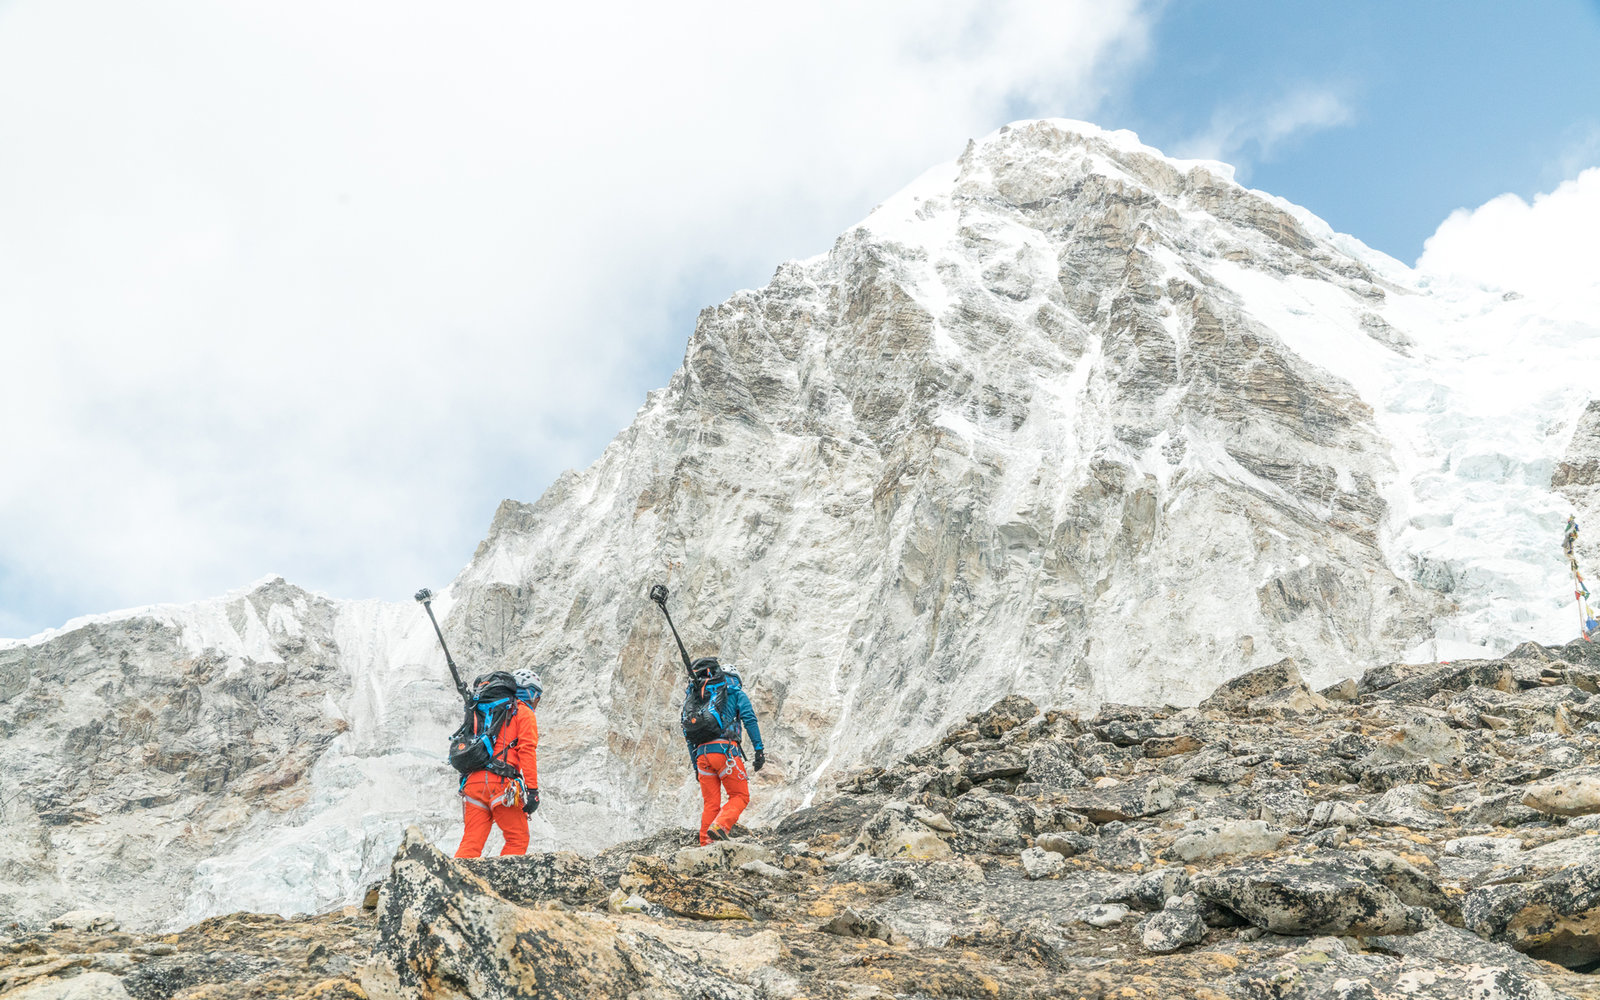 Explore Mount Everest With This Breathtaking 360-Degree Experience